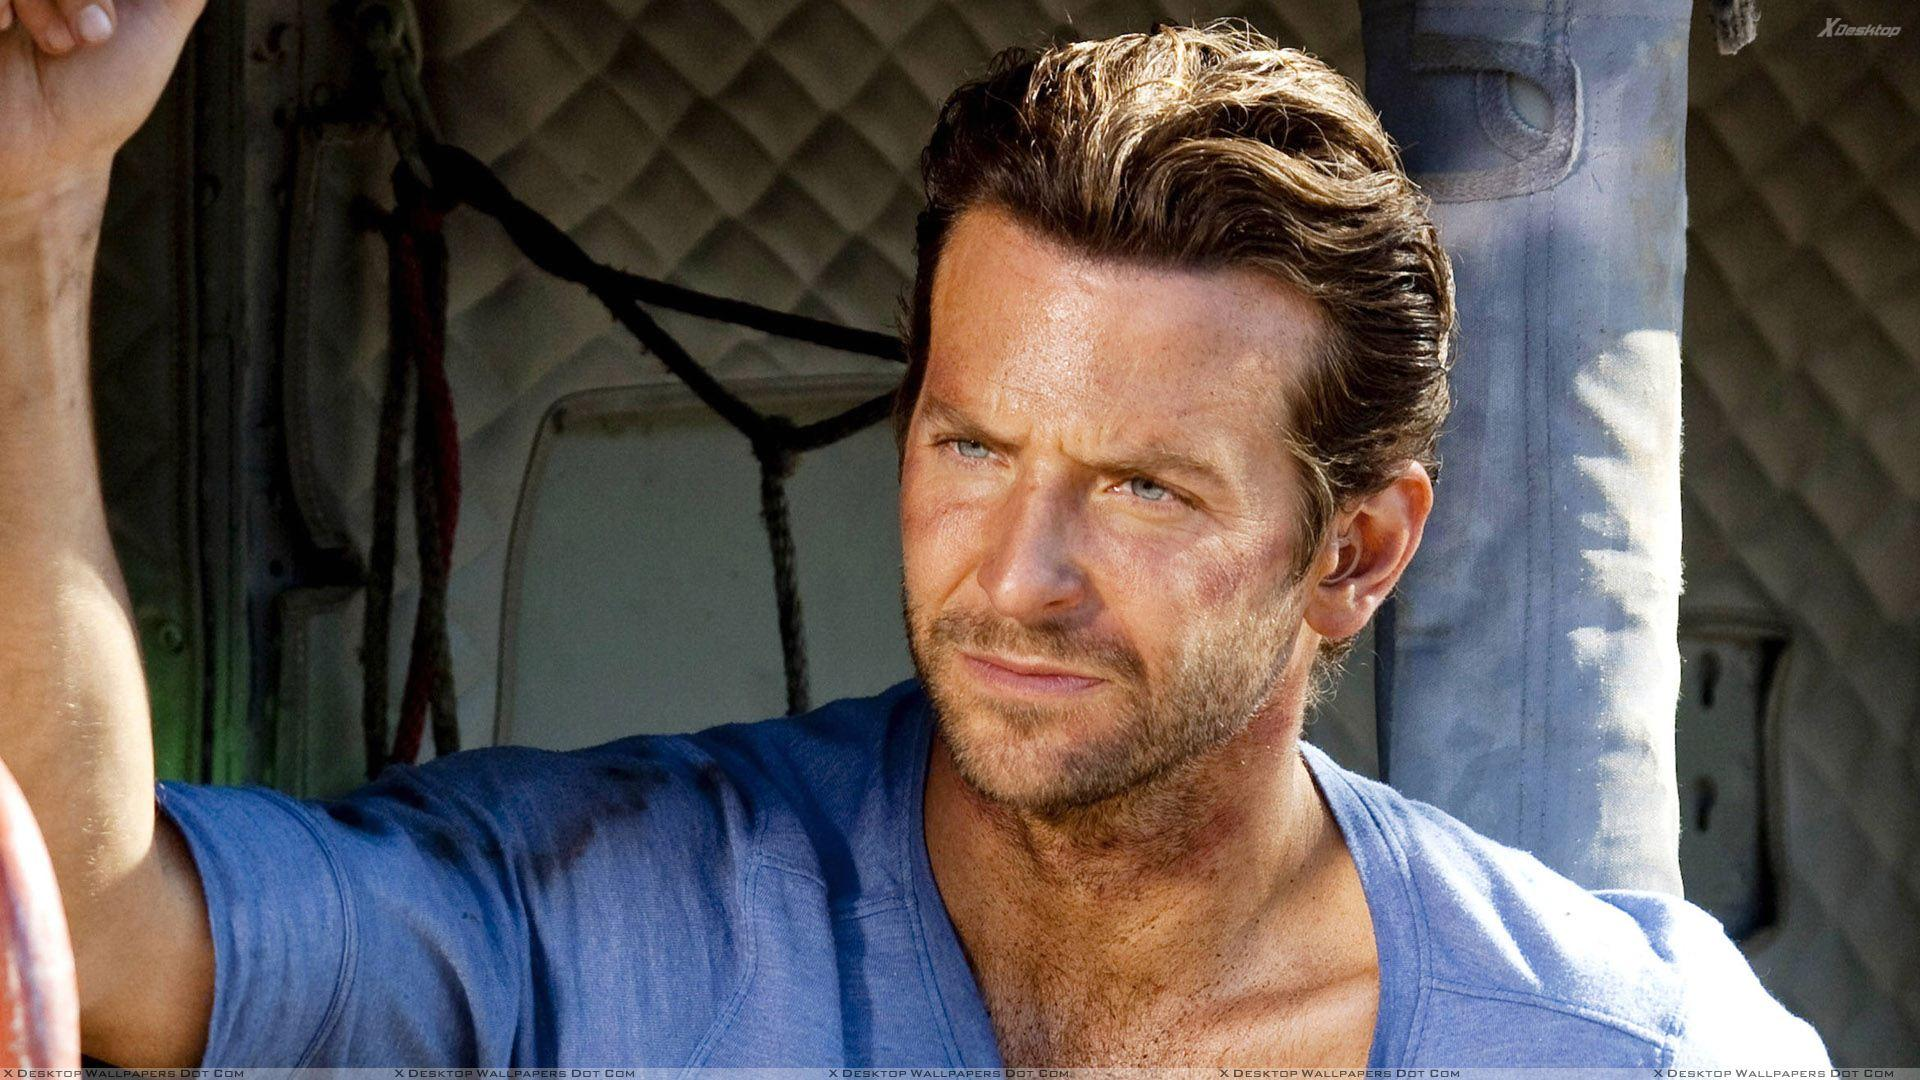 Bradley Cooper Angry Face In Blue T